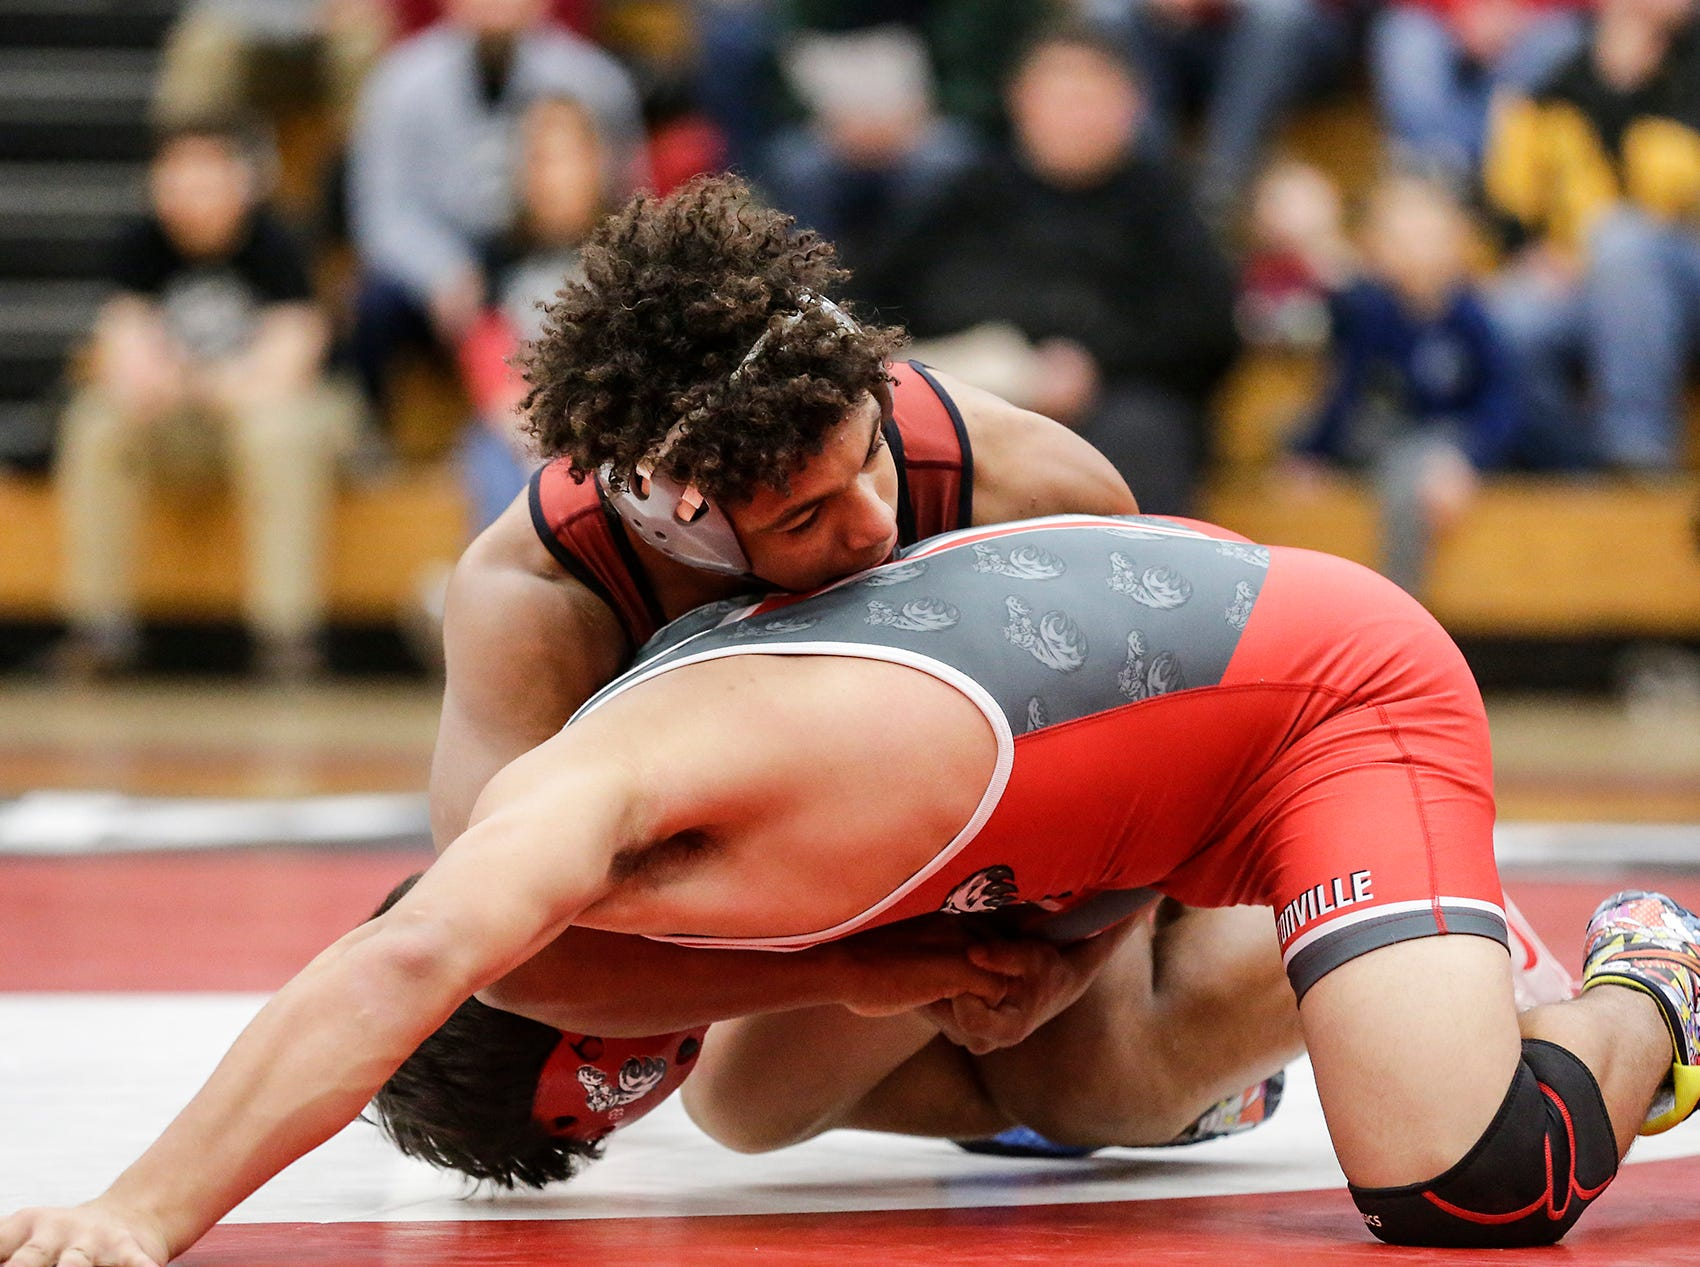 Fond du Lac High School wrestling's Braelon Allen wrestles against Rafino SotoVanCamp of Hortonville High School in the 182 weight class during their meet Thrusday, December 6, 2018 in Fond du Lac, Wisconsin. Allen won the match with a pin and Fond du Lac won the meet 51-18. Doug Raflik/USA TODAY NETWORK-Wisconsin